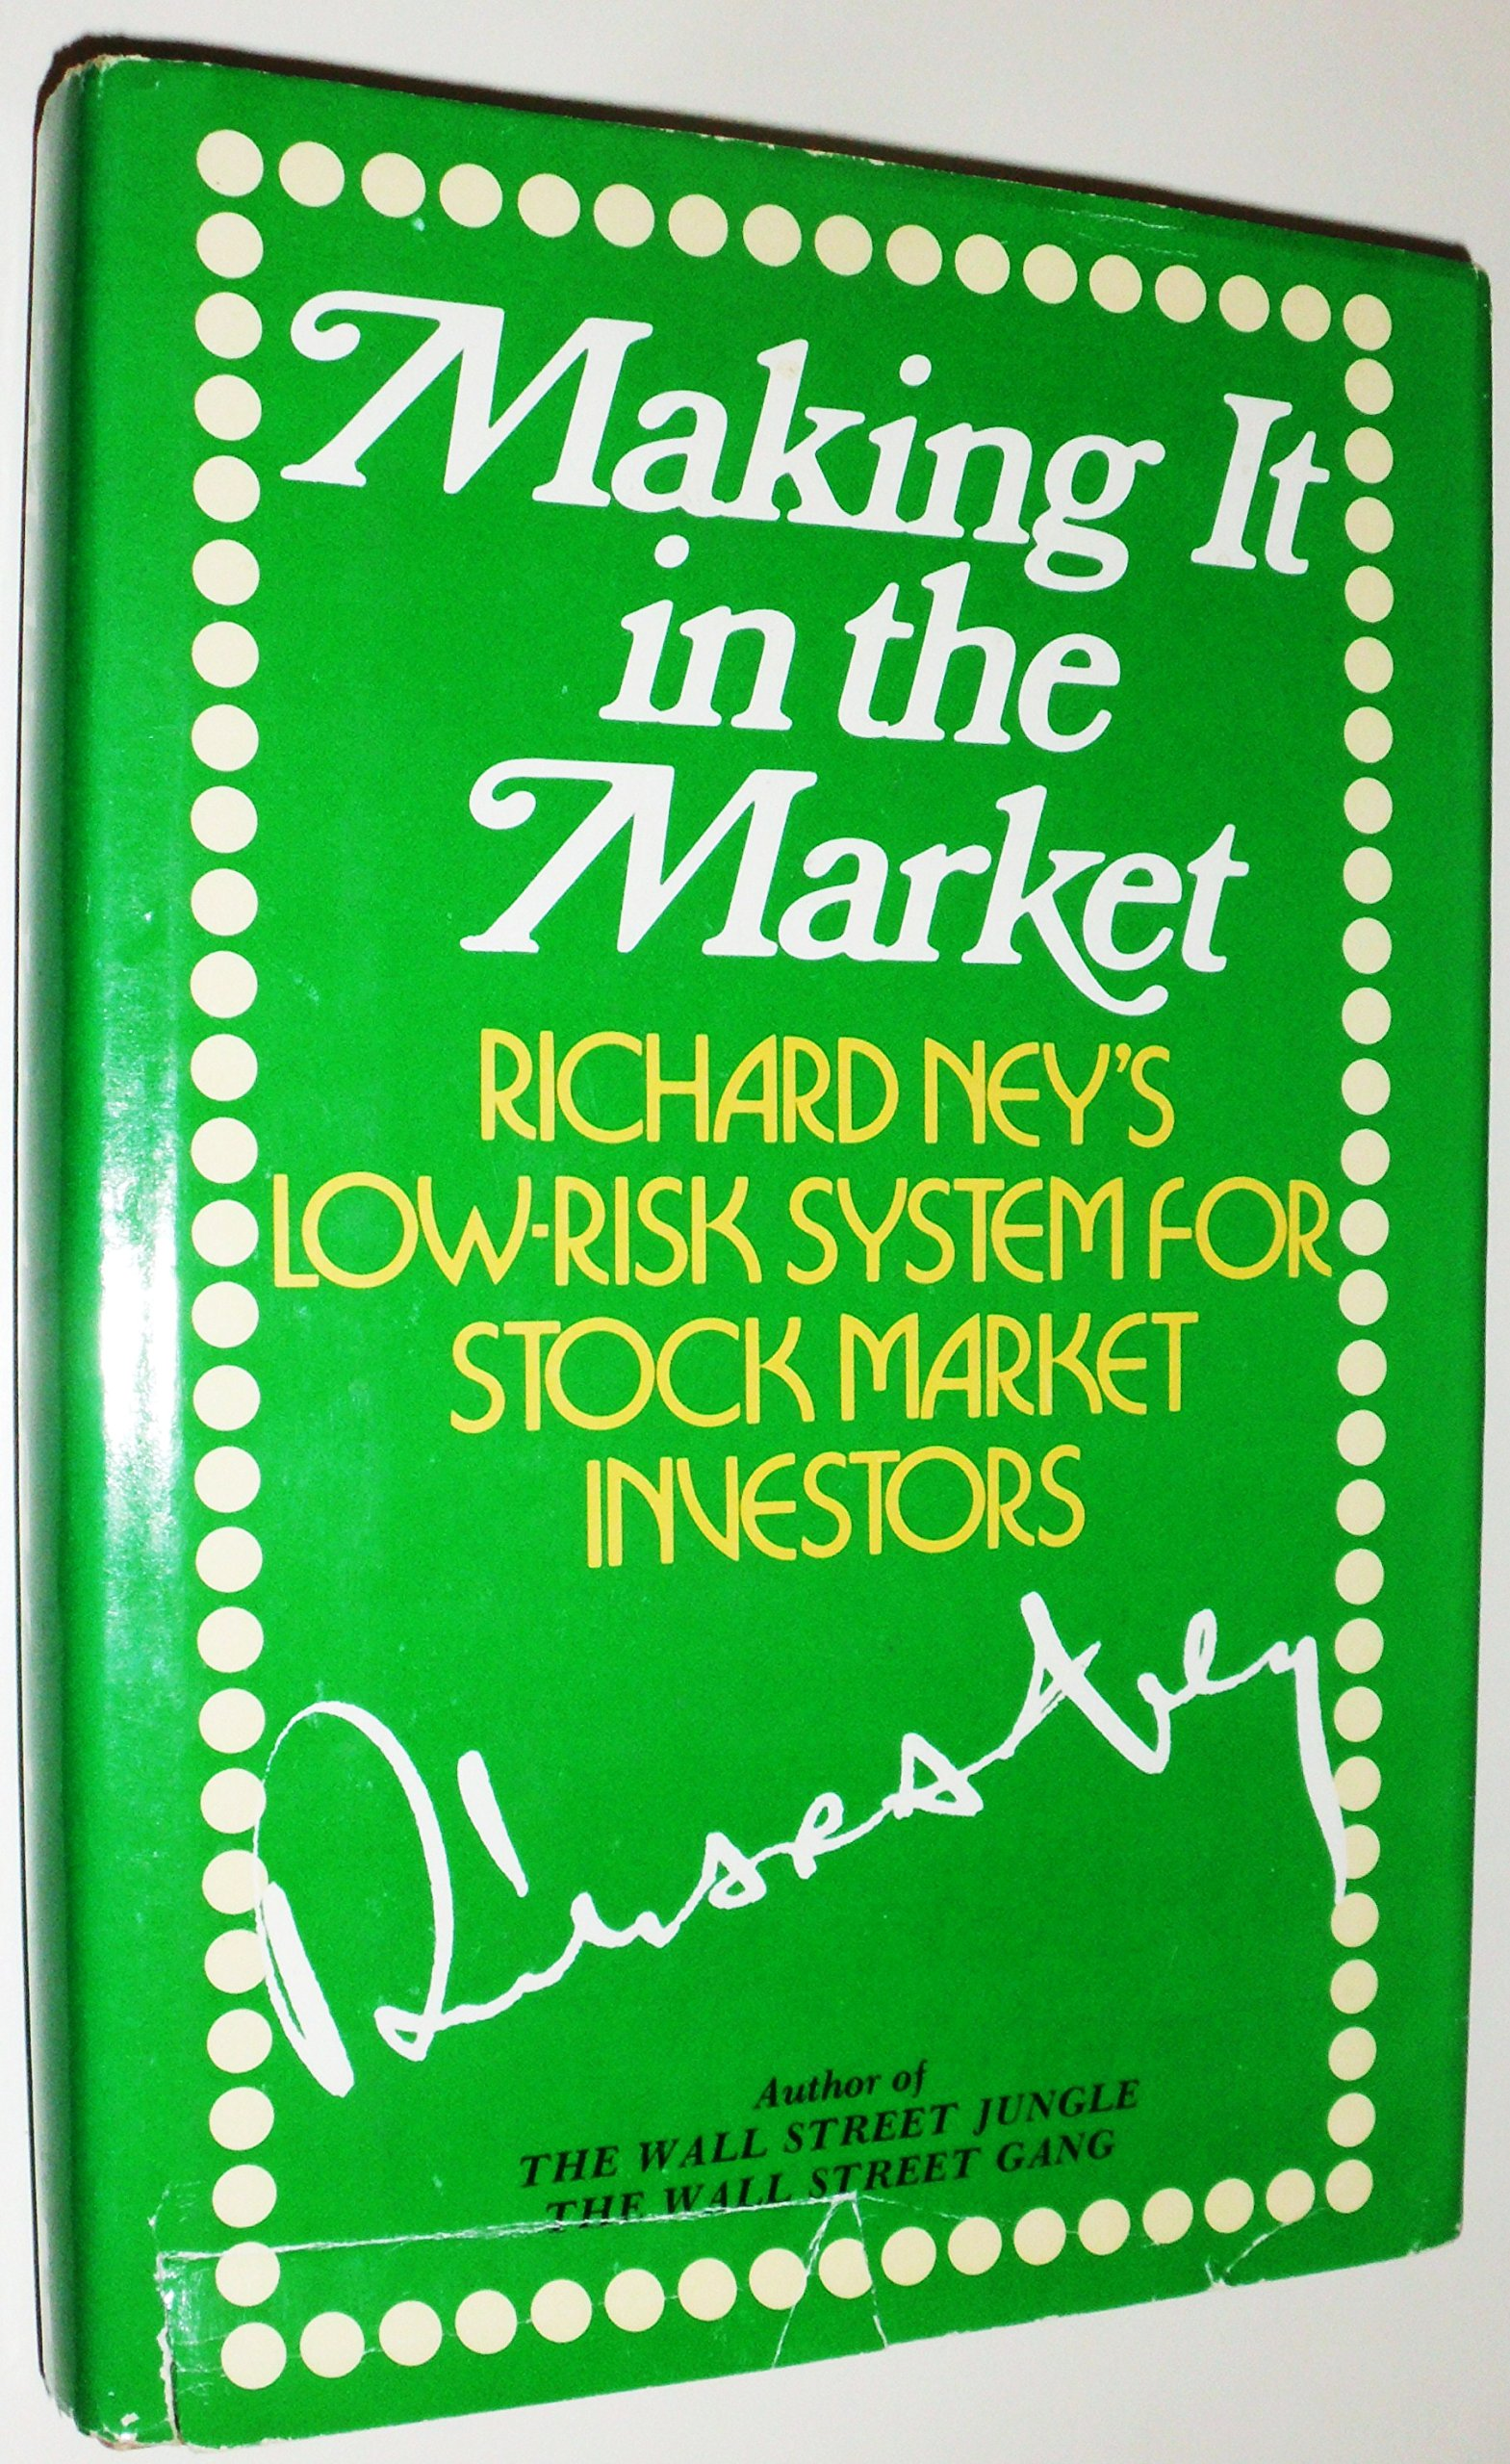 Making It in the Market: Richard Ney's Low-Risk System for Stock Market Investors